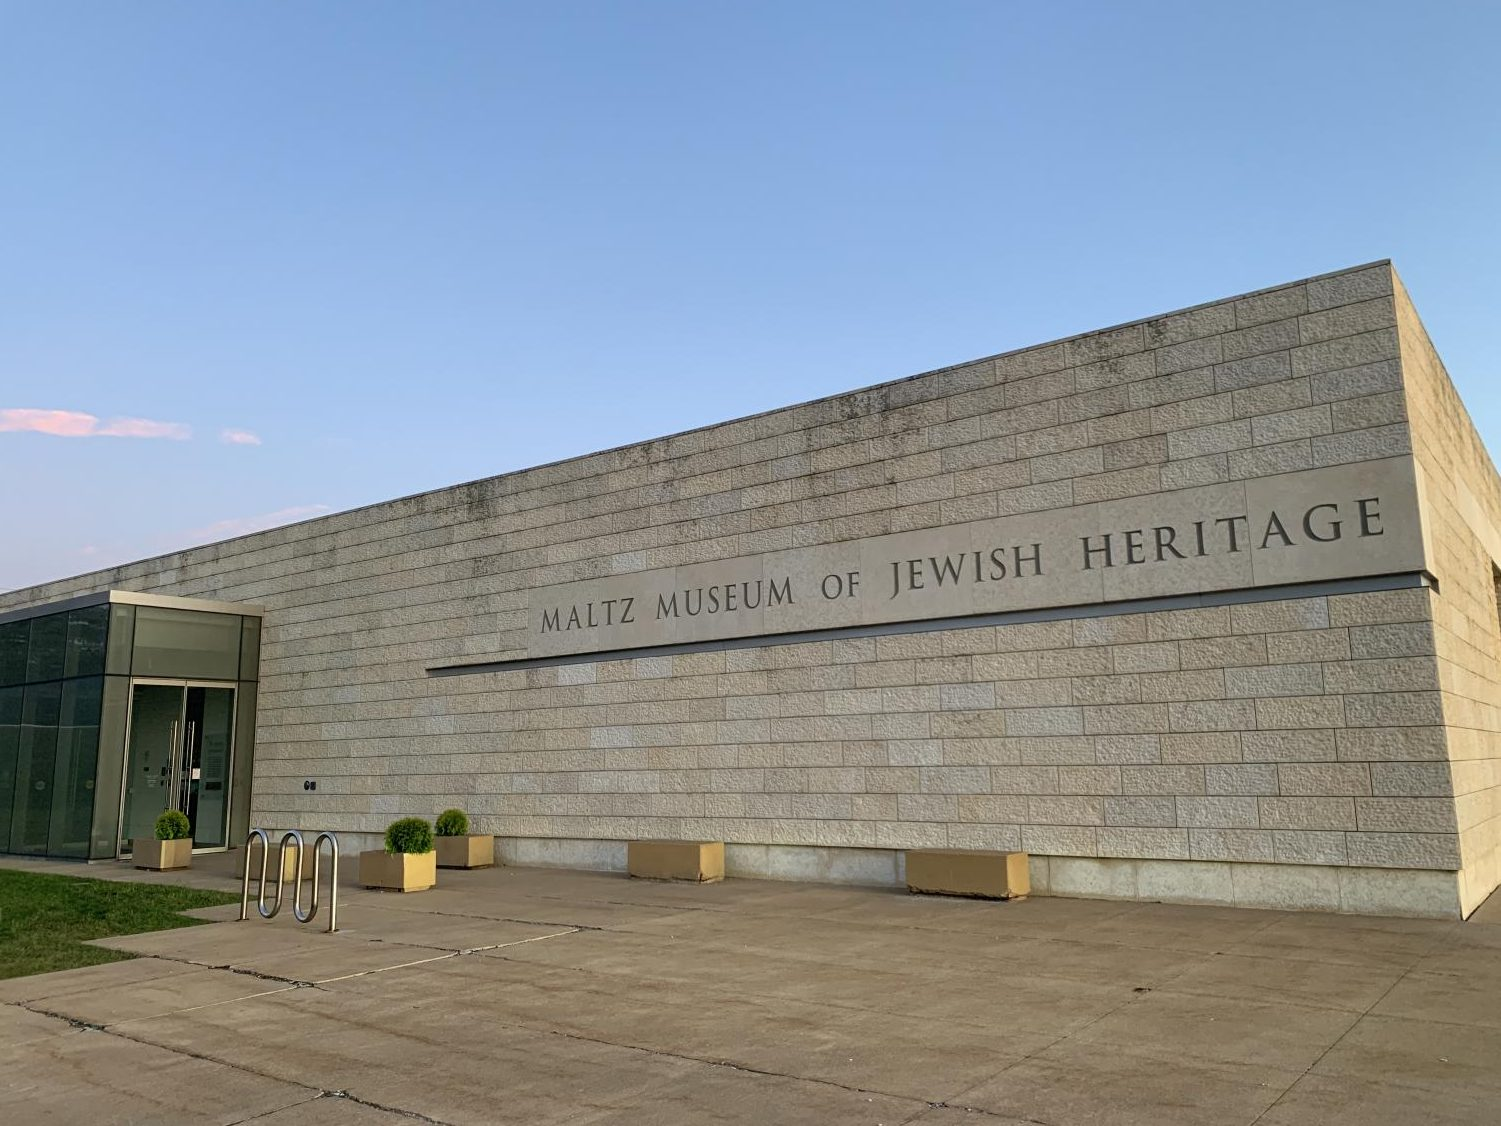 An anti-Semitic flyer was posted on the sign in front of the Maltz Museum of Jewish Heritage in July.